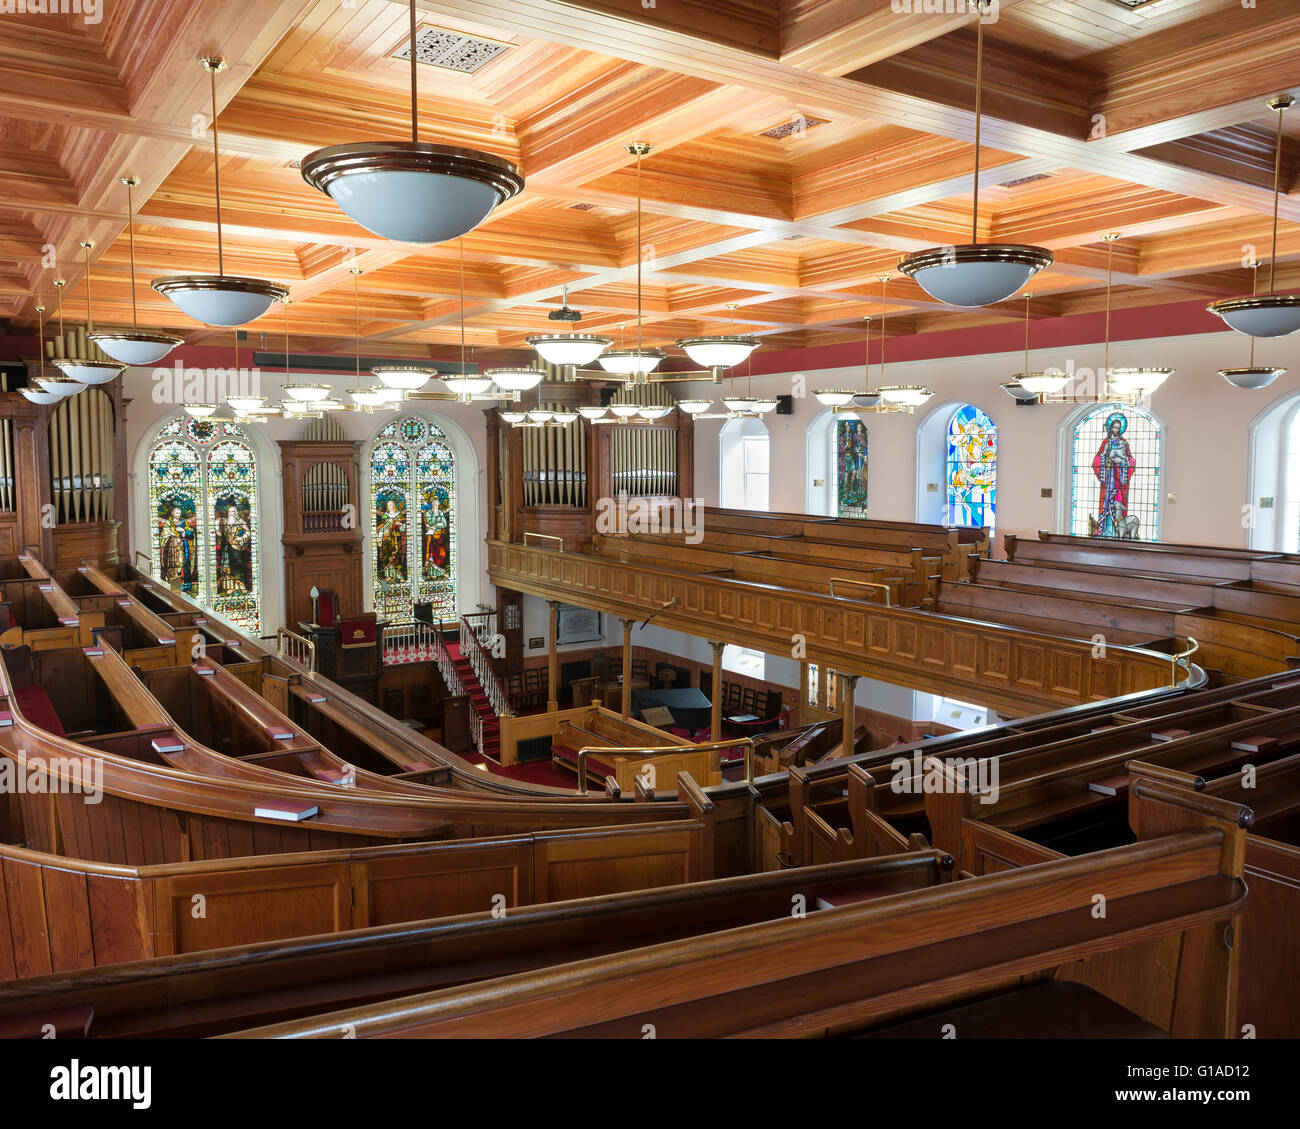 First Derry presbyterian church. Derry, Londonderry. Northern Ireland. UK. Europe - Stock Image